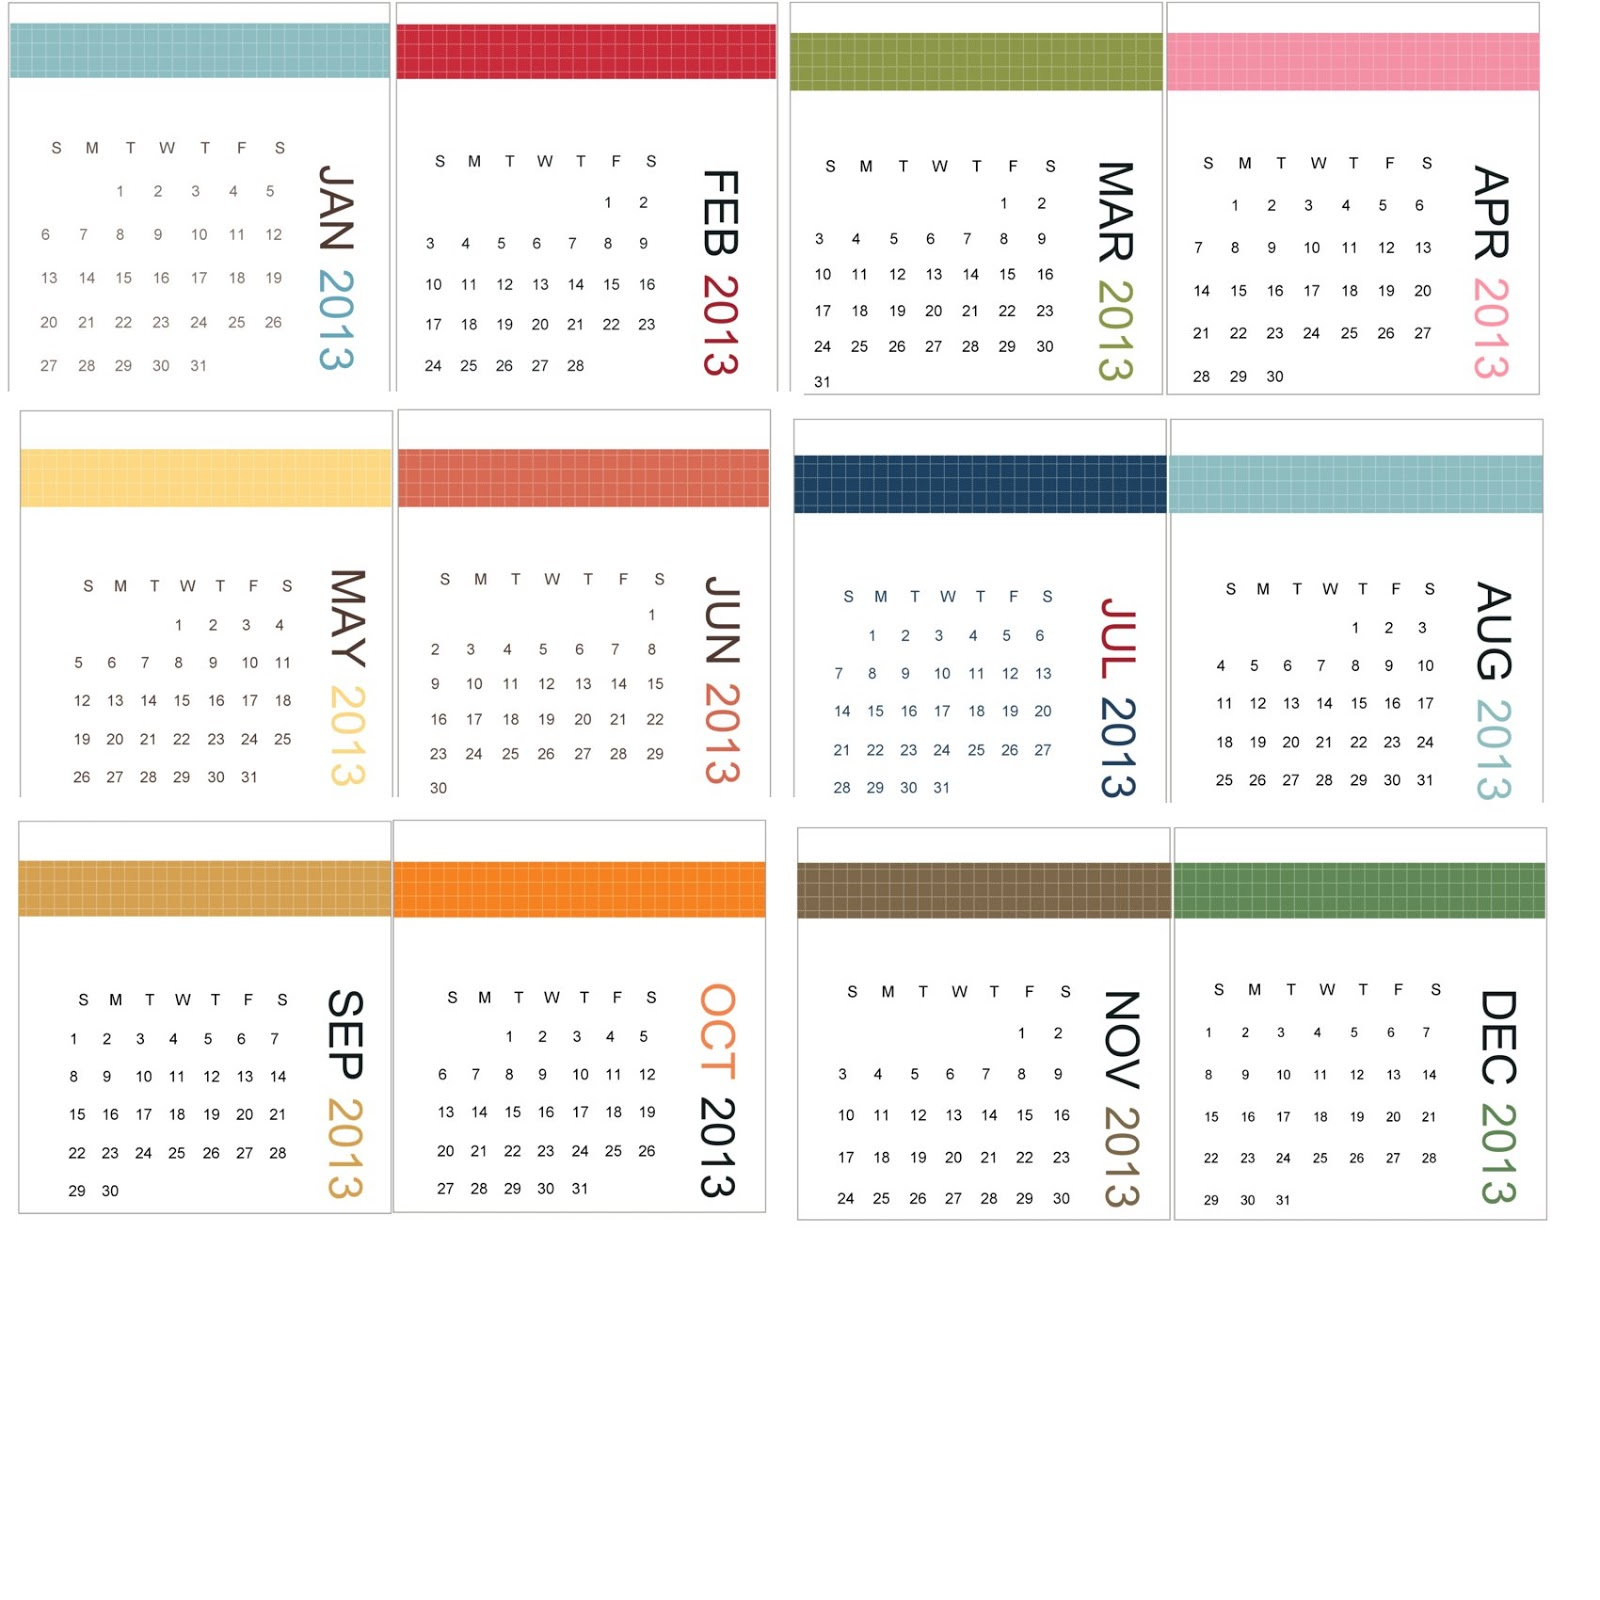 Health Calendar Design : Latest fashion bollywood fashoin style